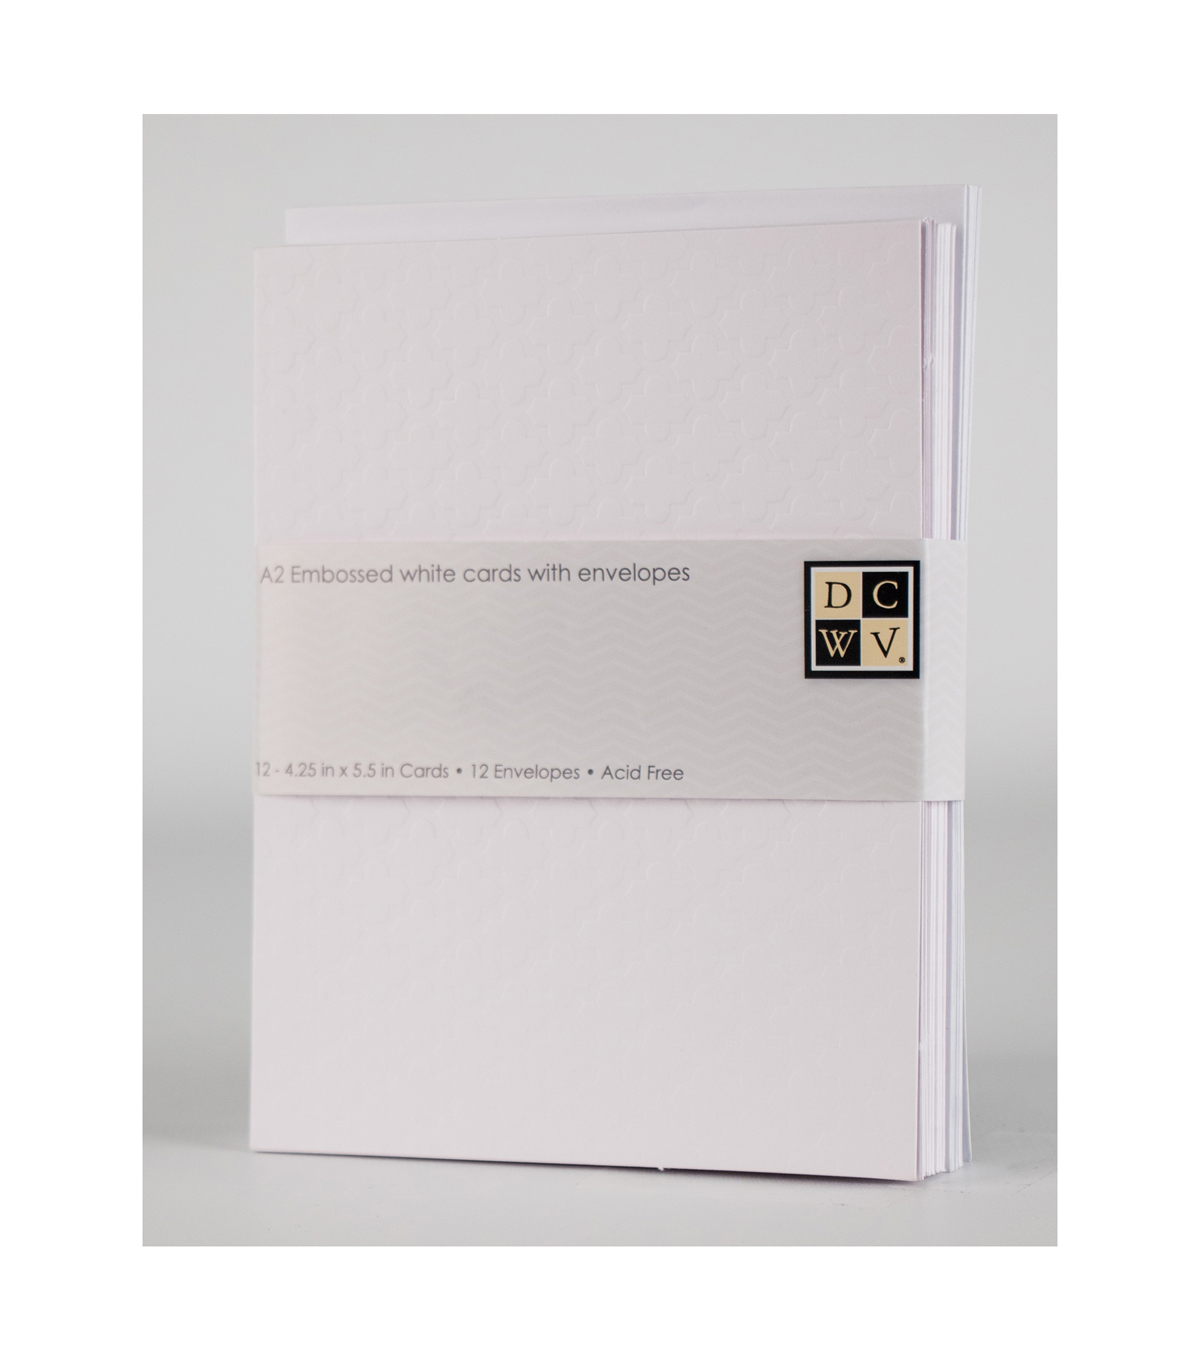 DCWV A2 12 pack card and envelope set: Embossed White Card set